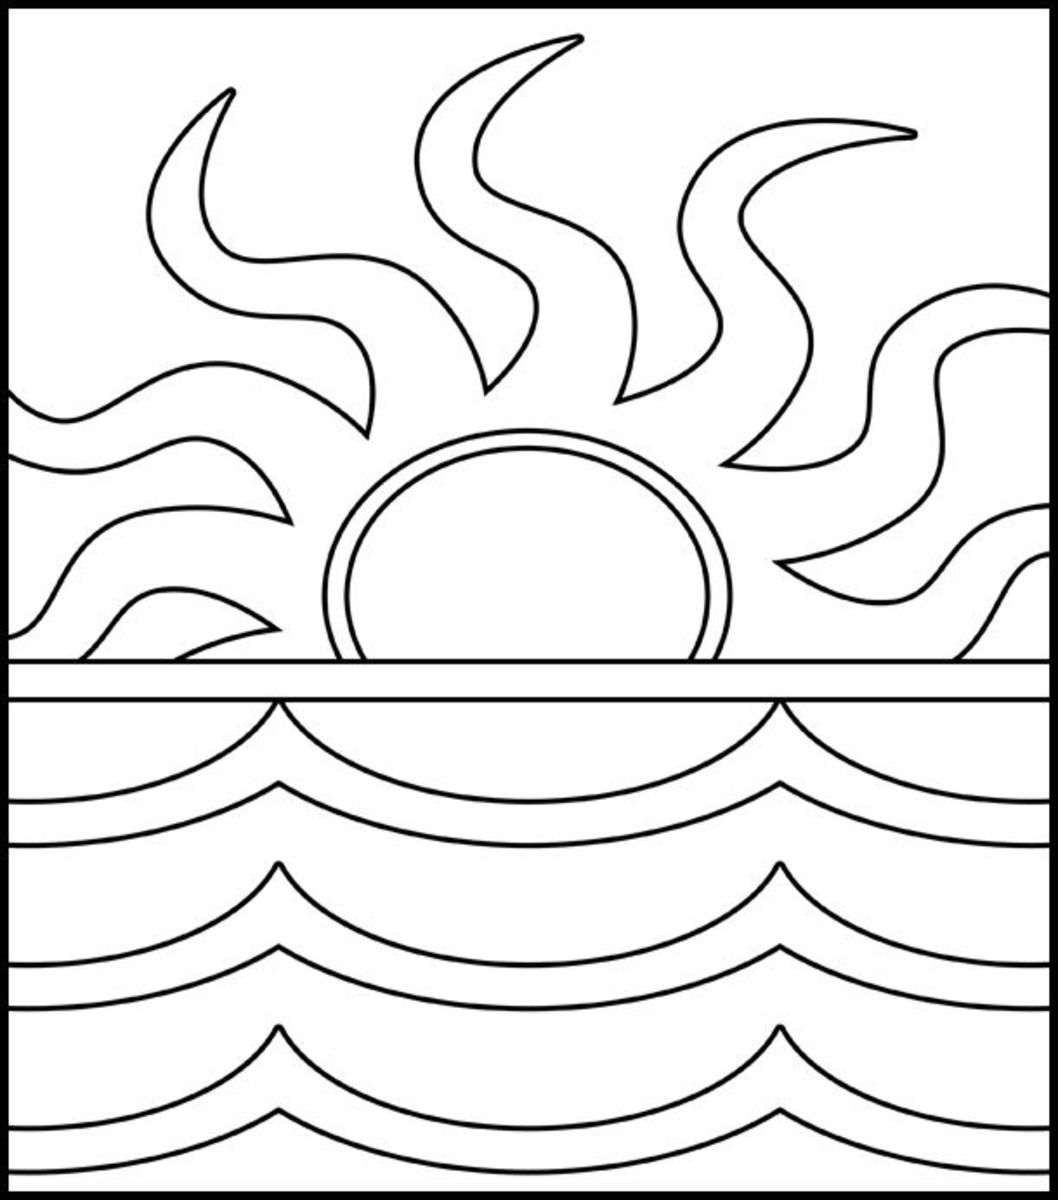 sunset coloring pages sunset coloring pages to download and print for free pages sunset coloring